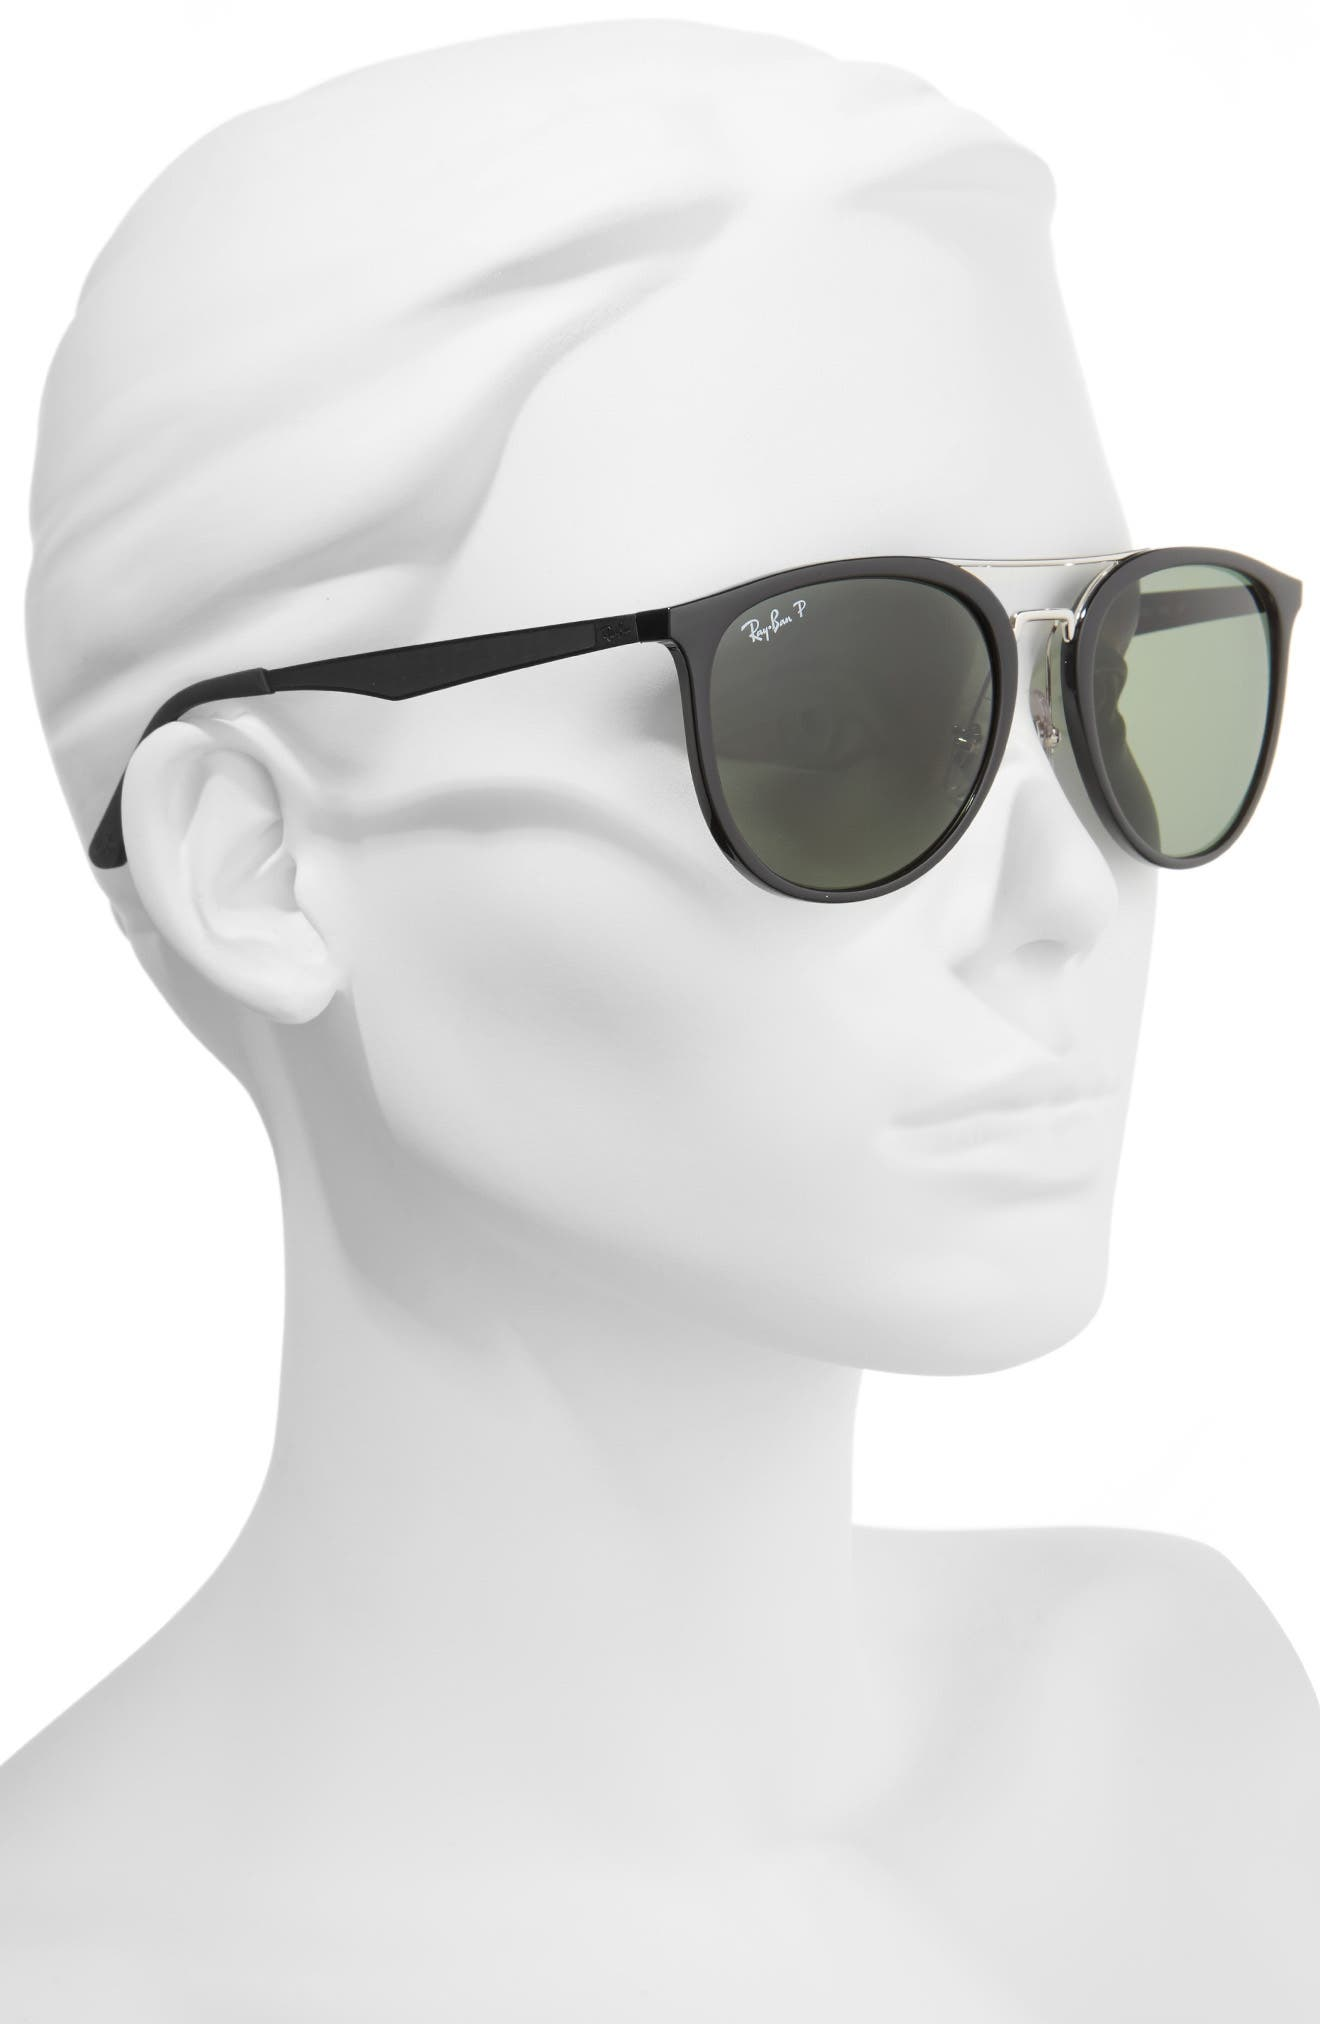 55mm Polarized Sunglasses,                             Alternate thumbnail 2, color,                             BLACK